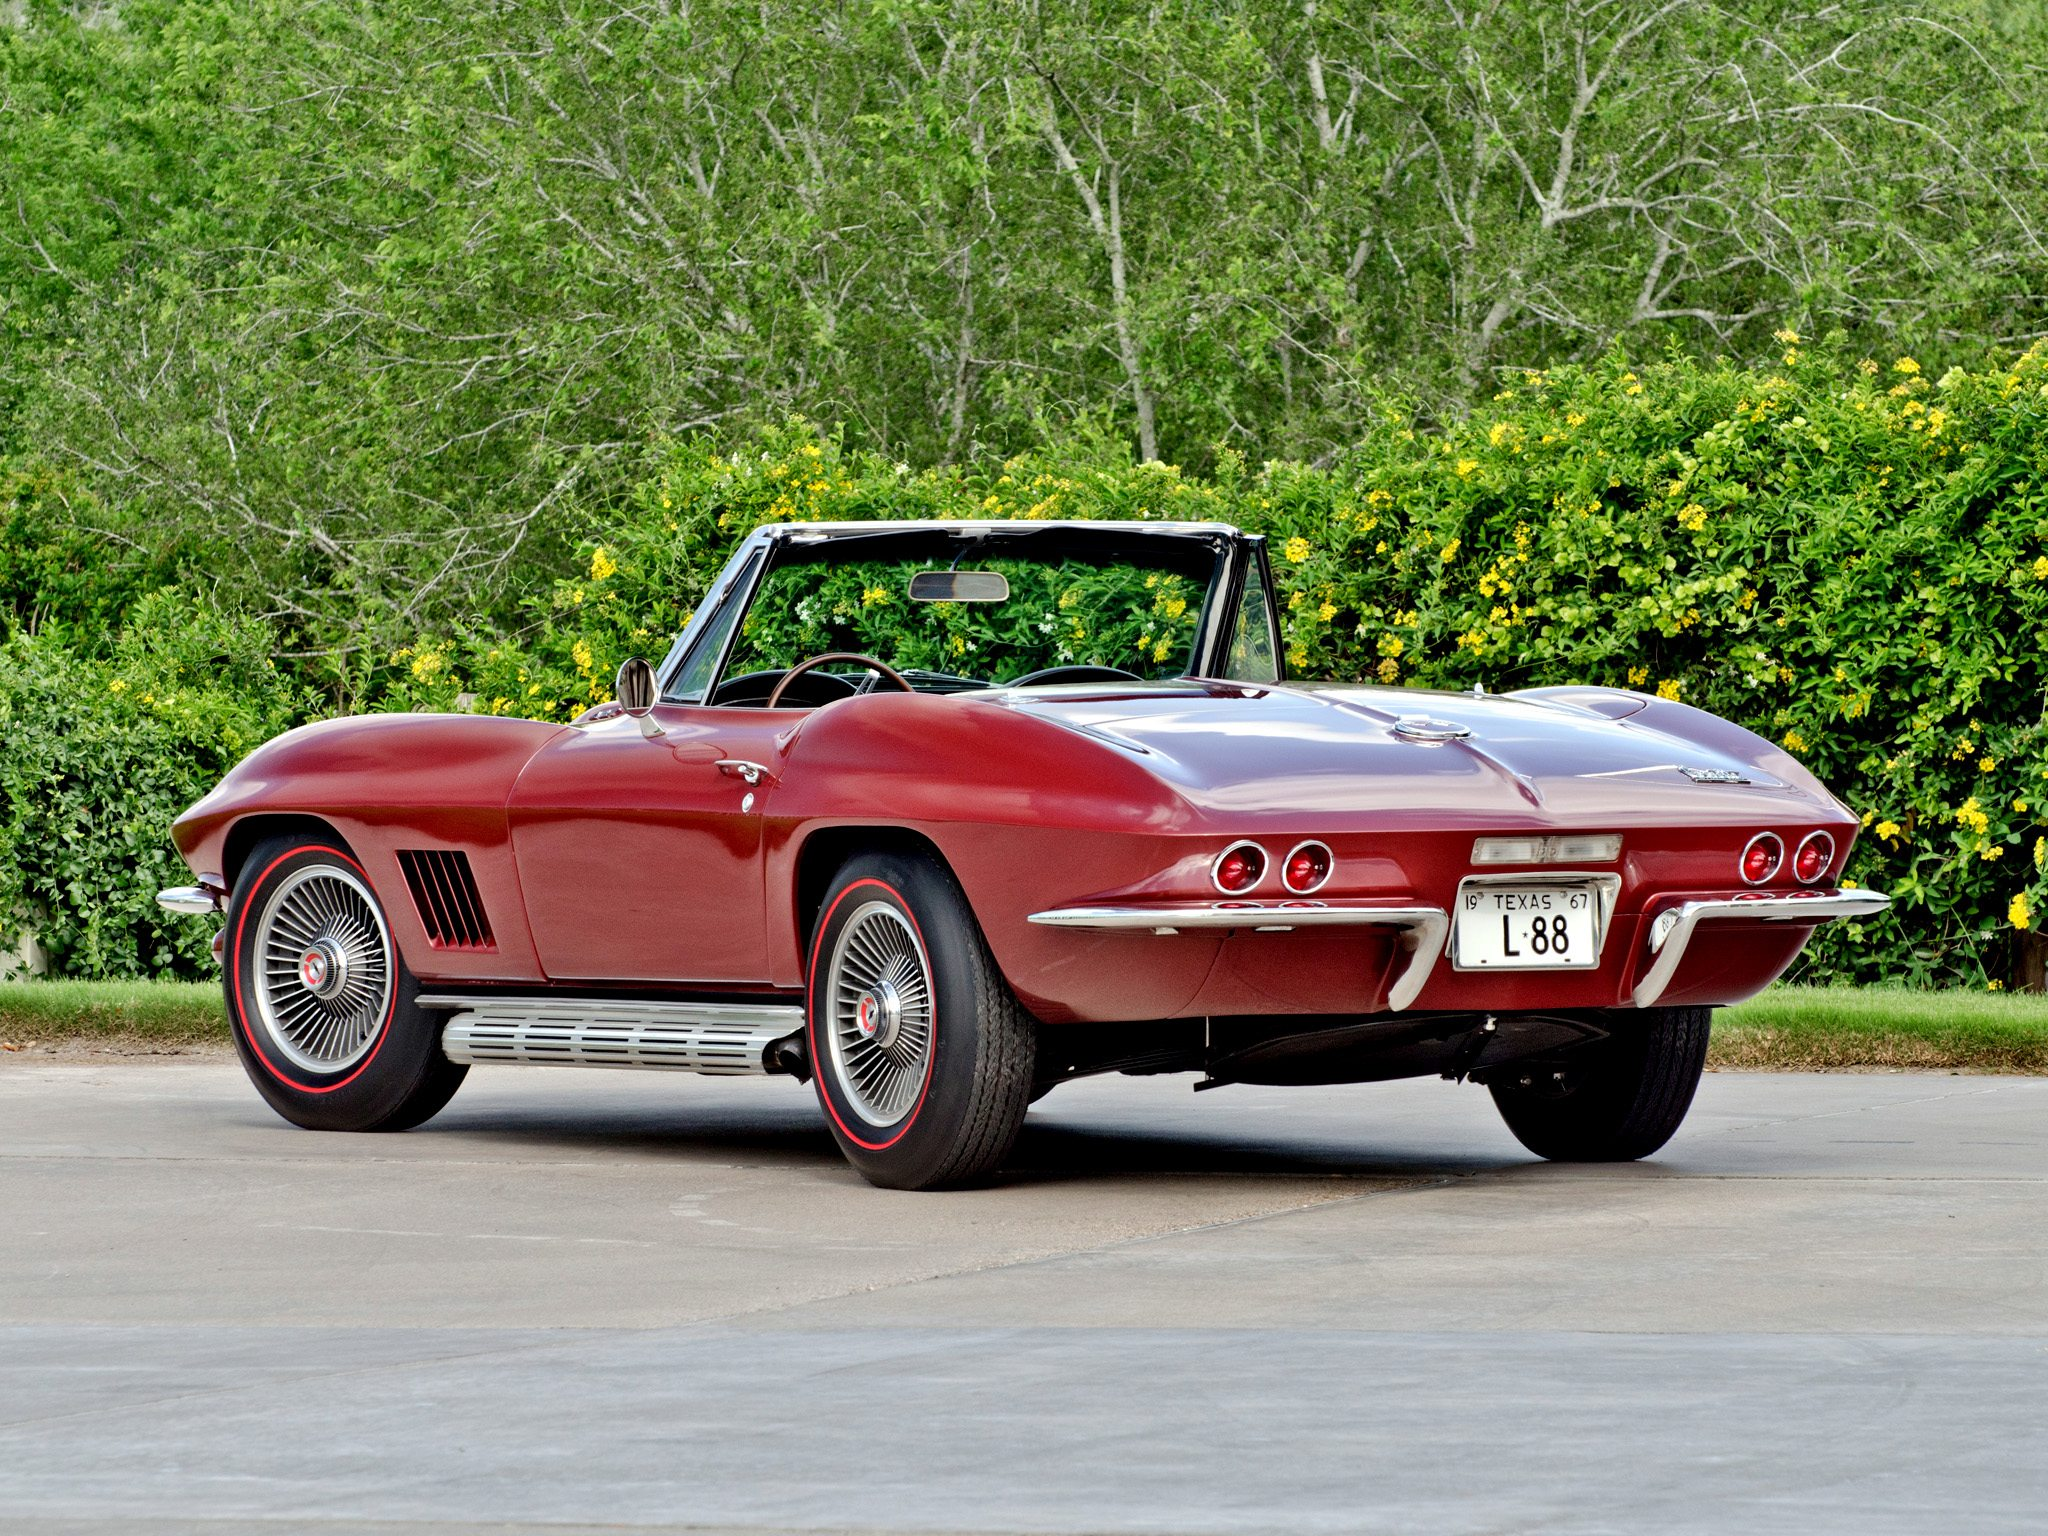 1967 C2 Corvette Ultimate Guide Overview Specs Vin Info 67 Headlight Motor Wiring Diagram Performance Results